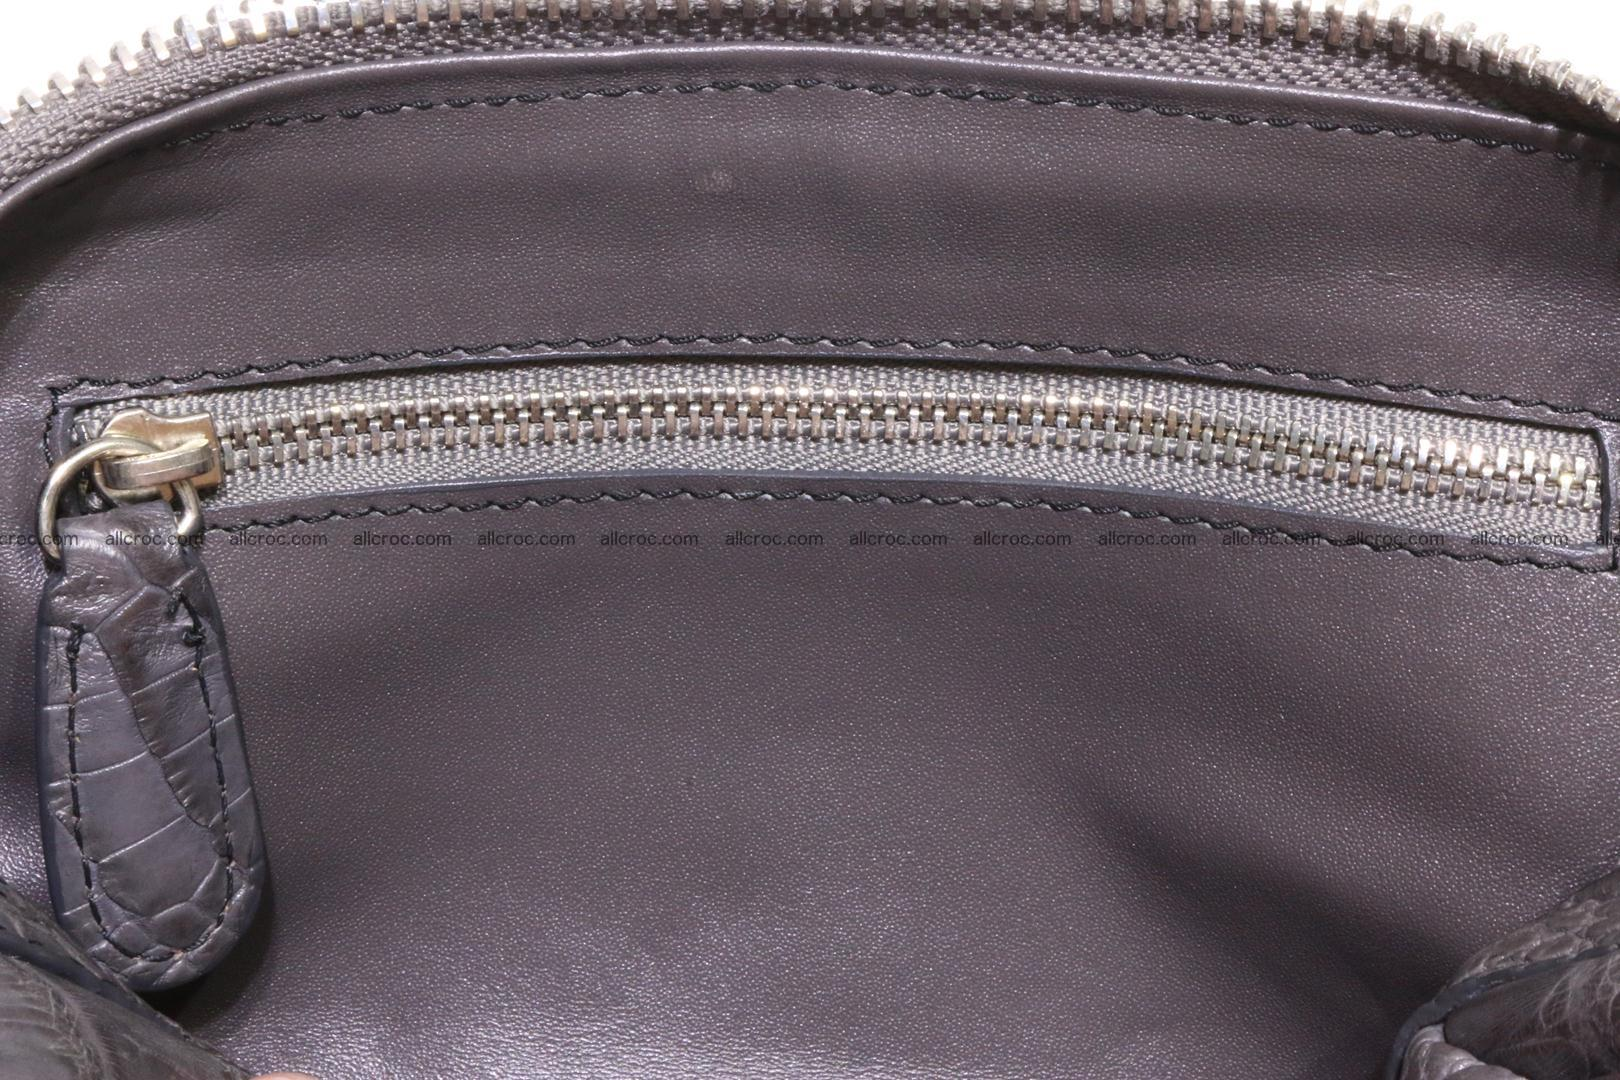 women's crocodile bag 038 Foto 13